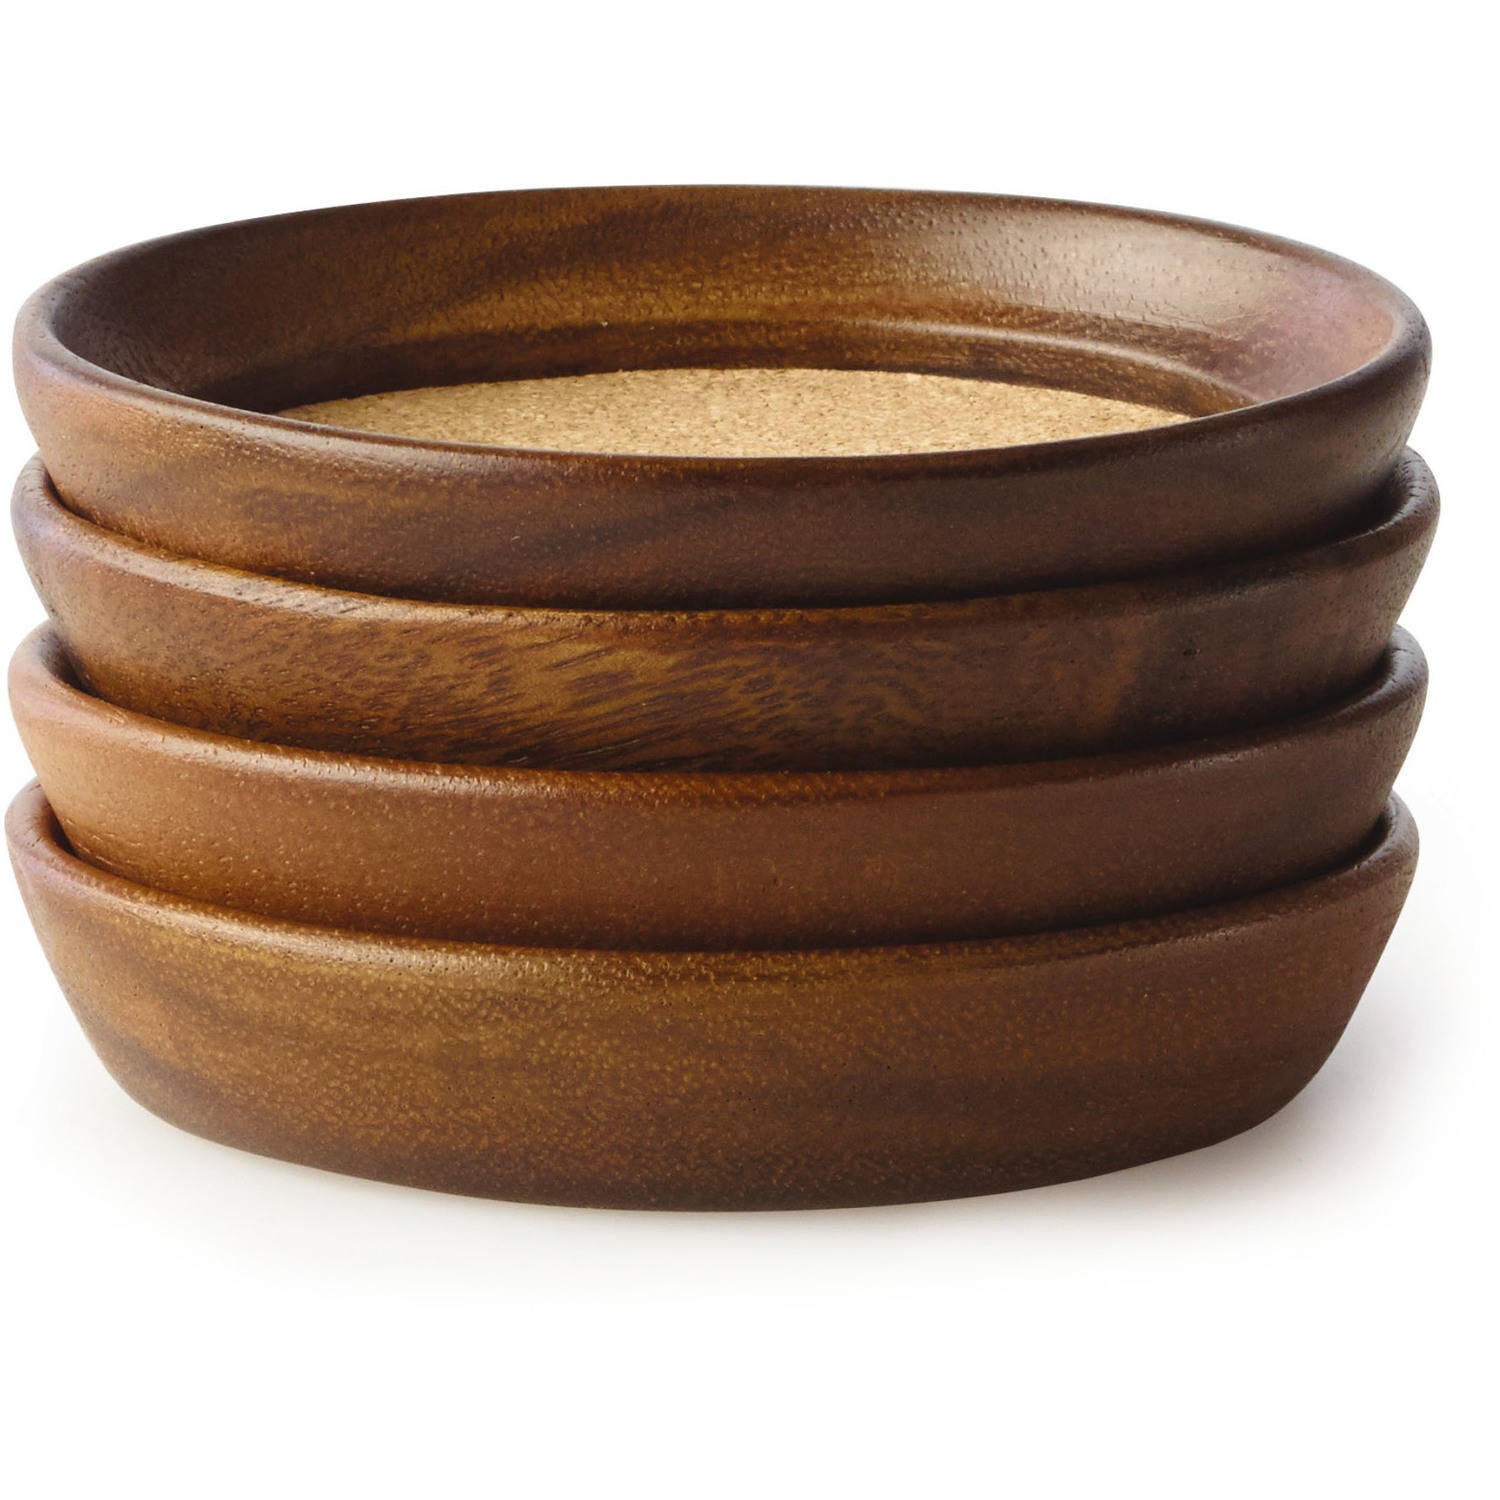 Kamenstein 4-Piece Acacia Wood and Cork Coaster Set